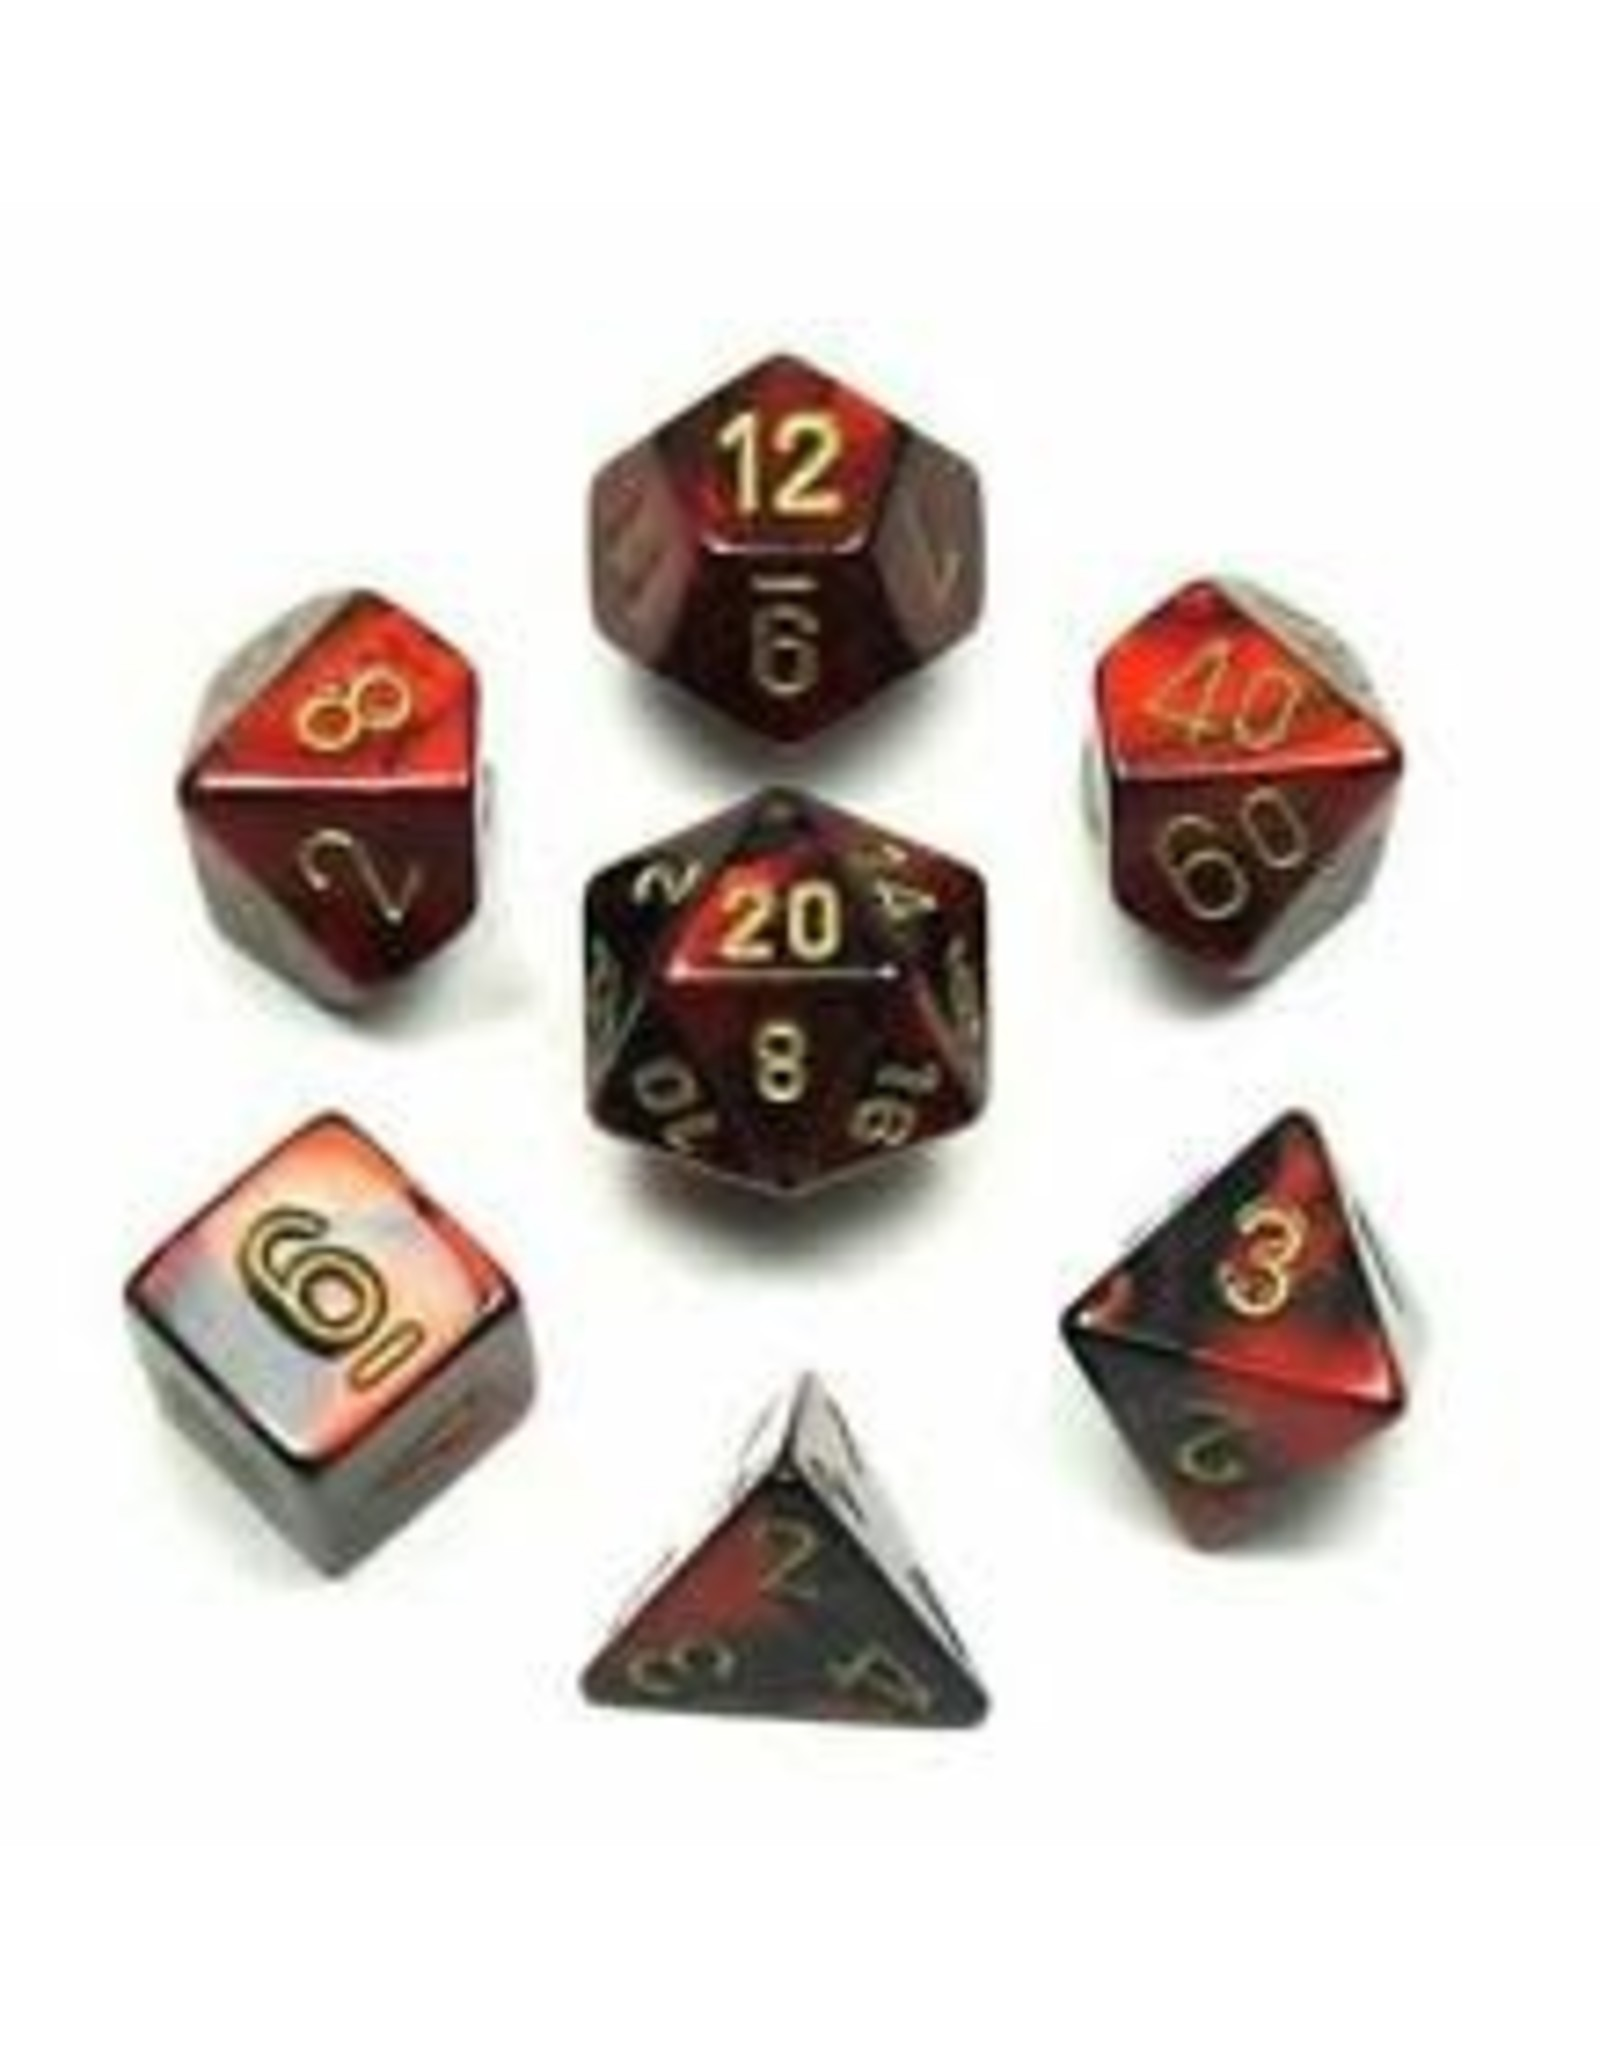 Chessex Dice: 7-Set Cube Gemini #3 Black Red with Gold Numbers (Chessex)